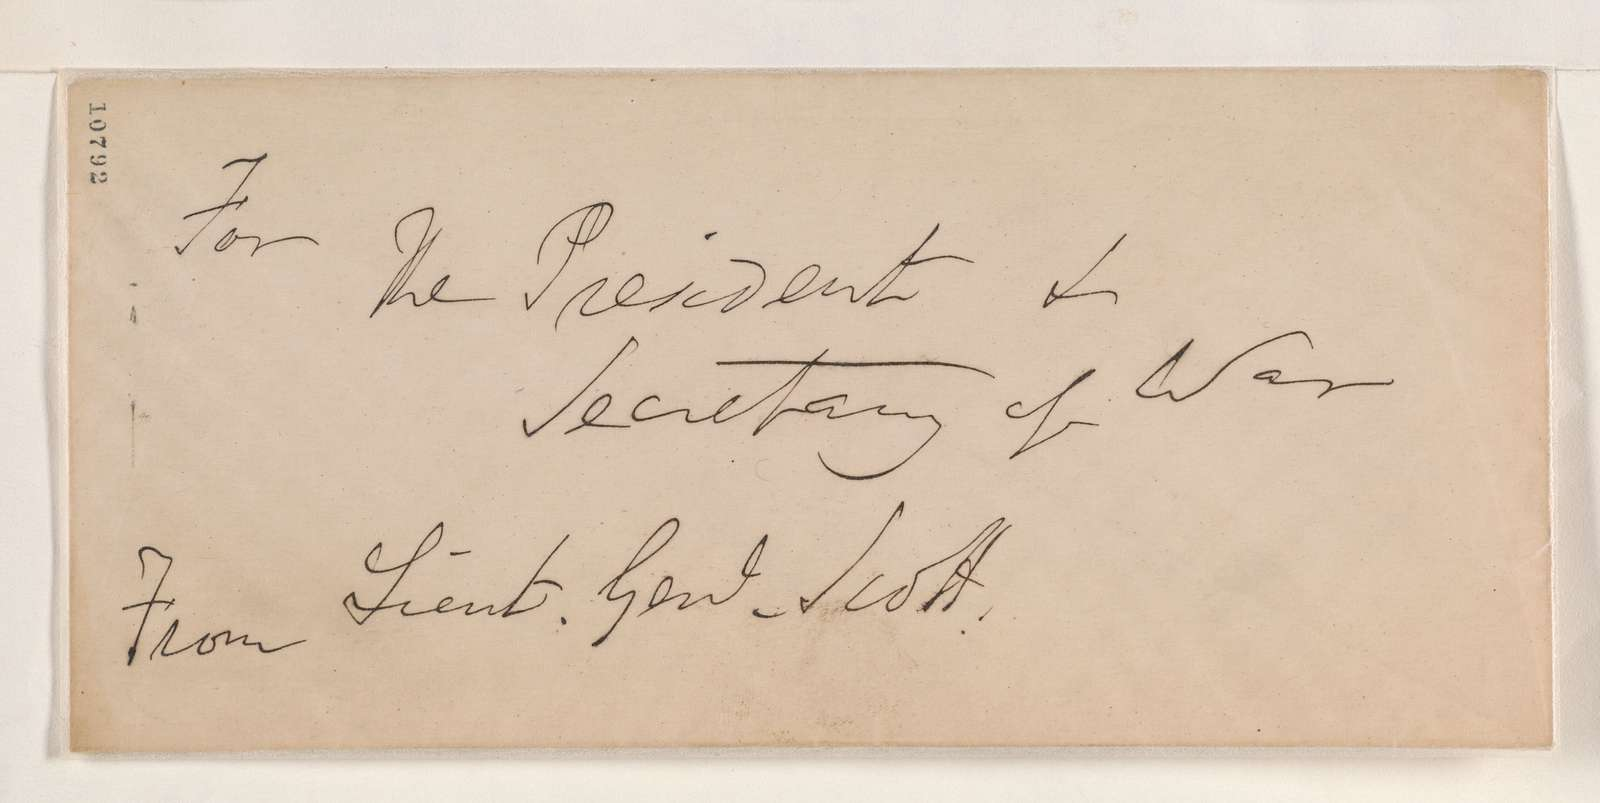 Abraham Lincoln papers: Series 1. General Correspondence. 1833-1916: Winfield Scott to Robert Patterson, Thursday, July 18, 1861 (Instructions)